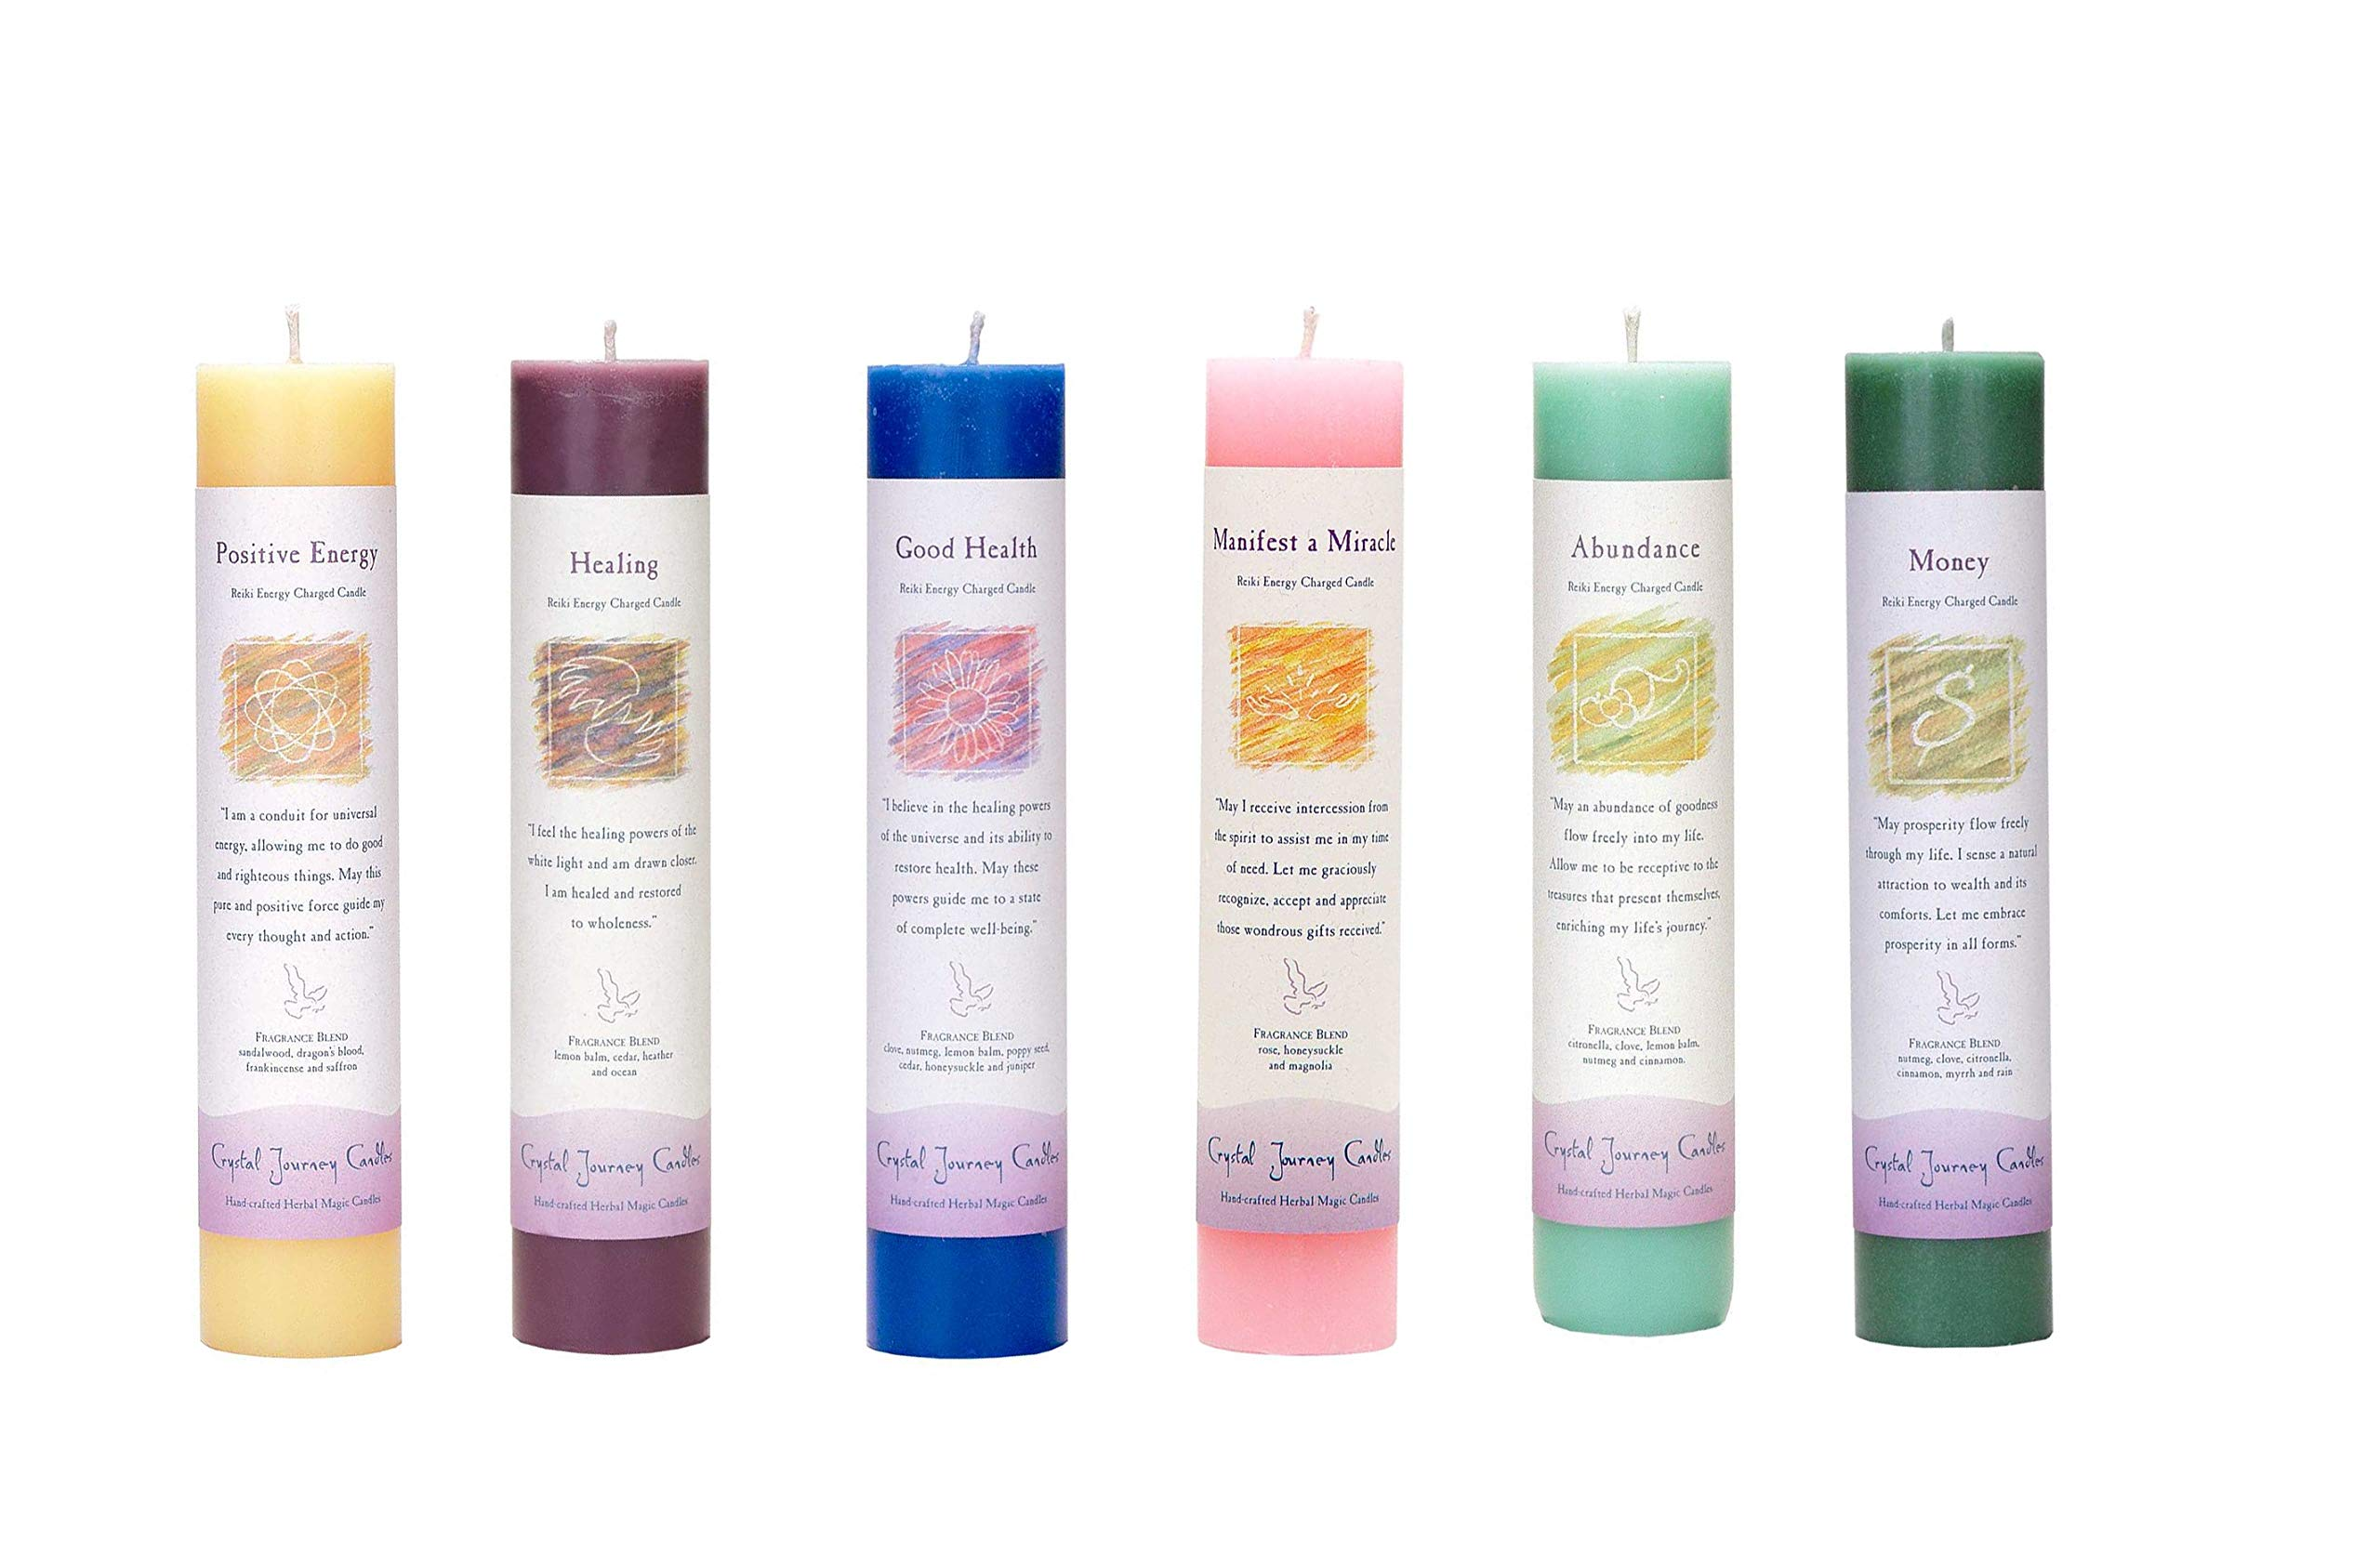 Crystal Journey Reiki Charged Herbal Magic Pillar Candle with Inspirational Labels - 6 Pack (Positive Energy, Healing, Good Health, Manifest a Miracle, Abundance, Money) Each 7''x1.5'' Handcrafted by Crystal Journey